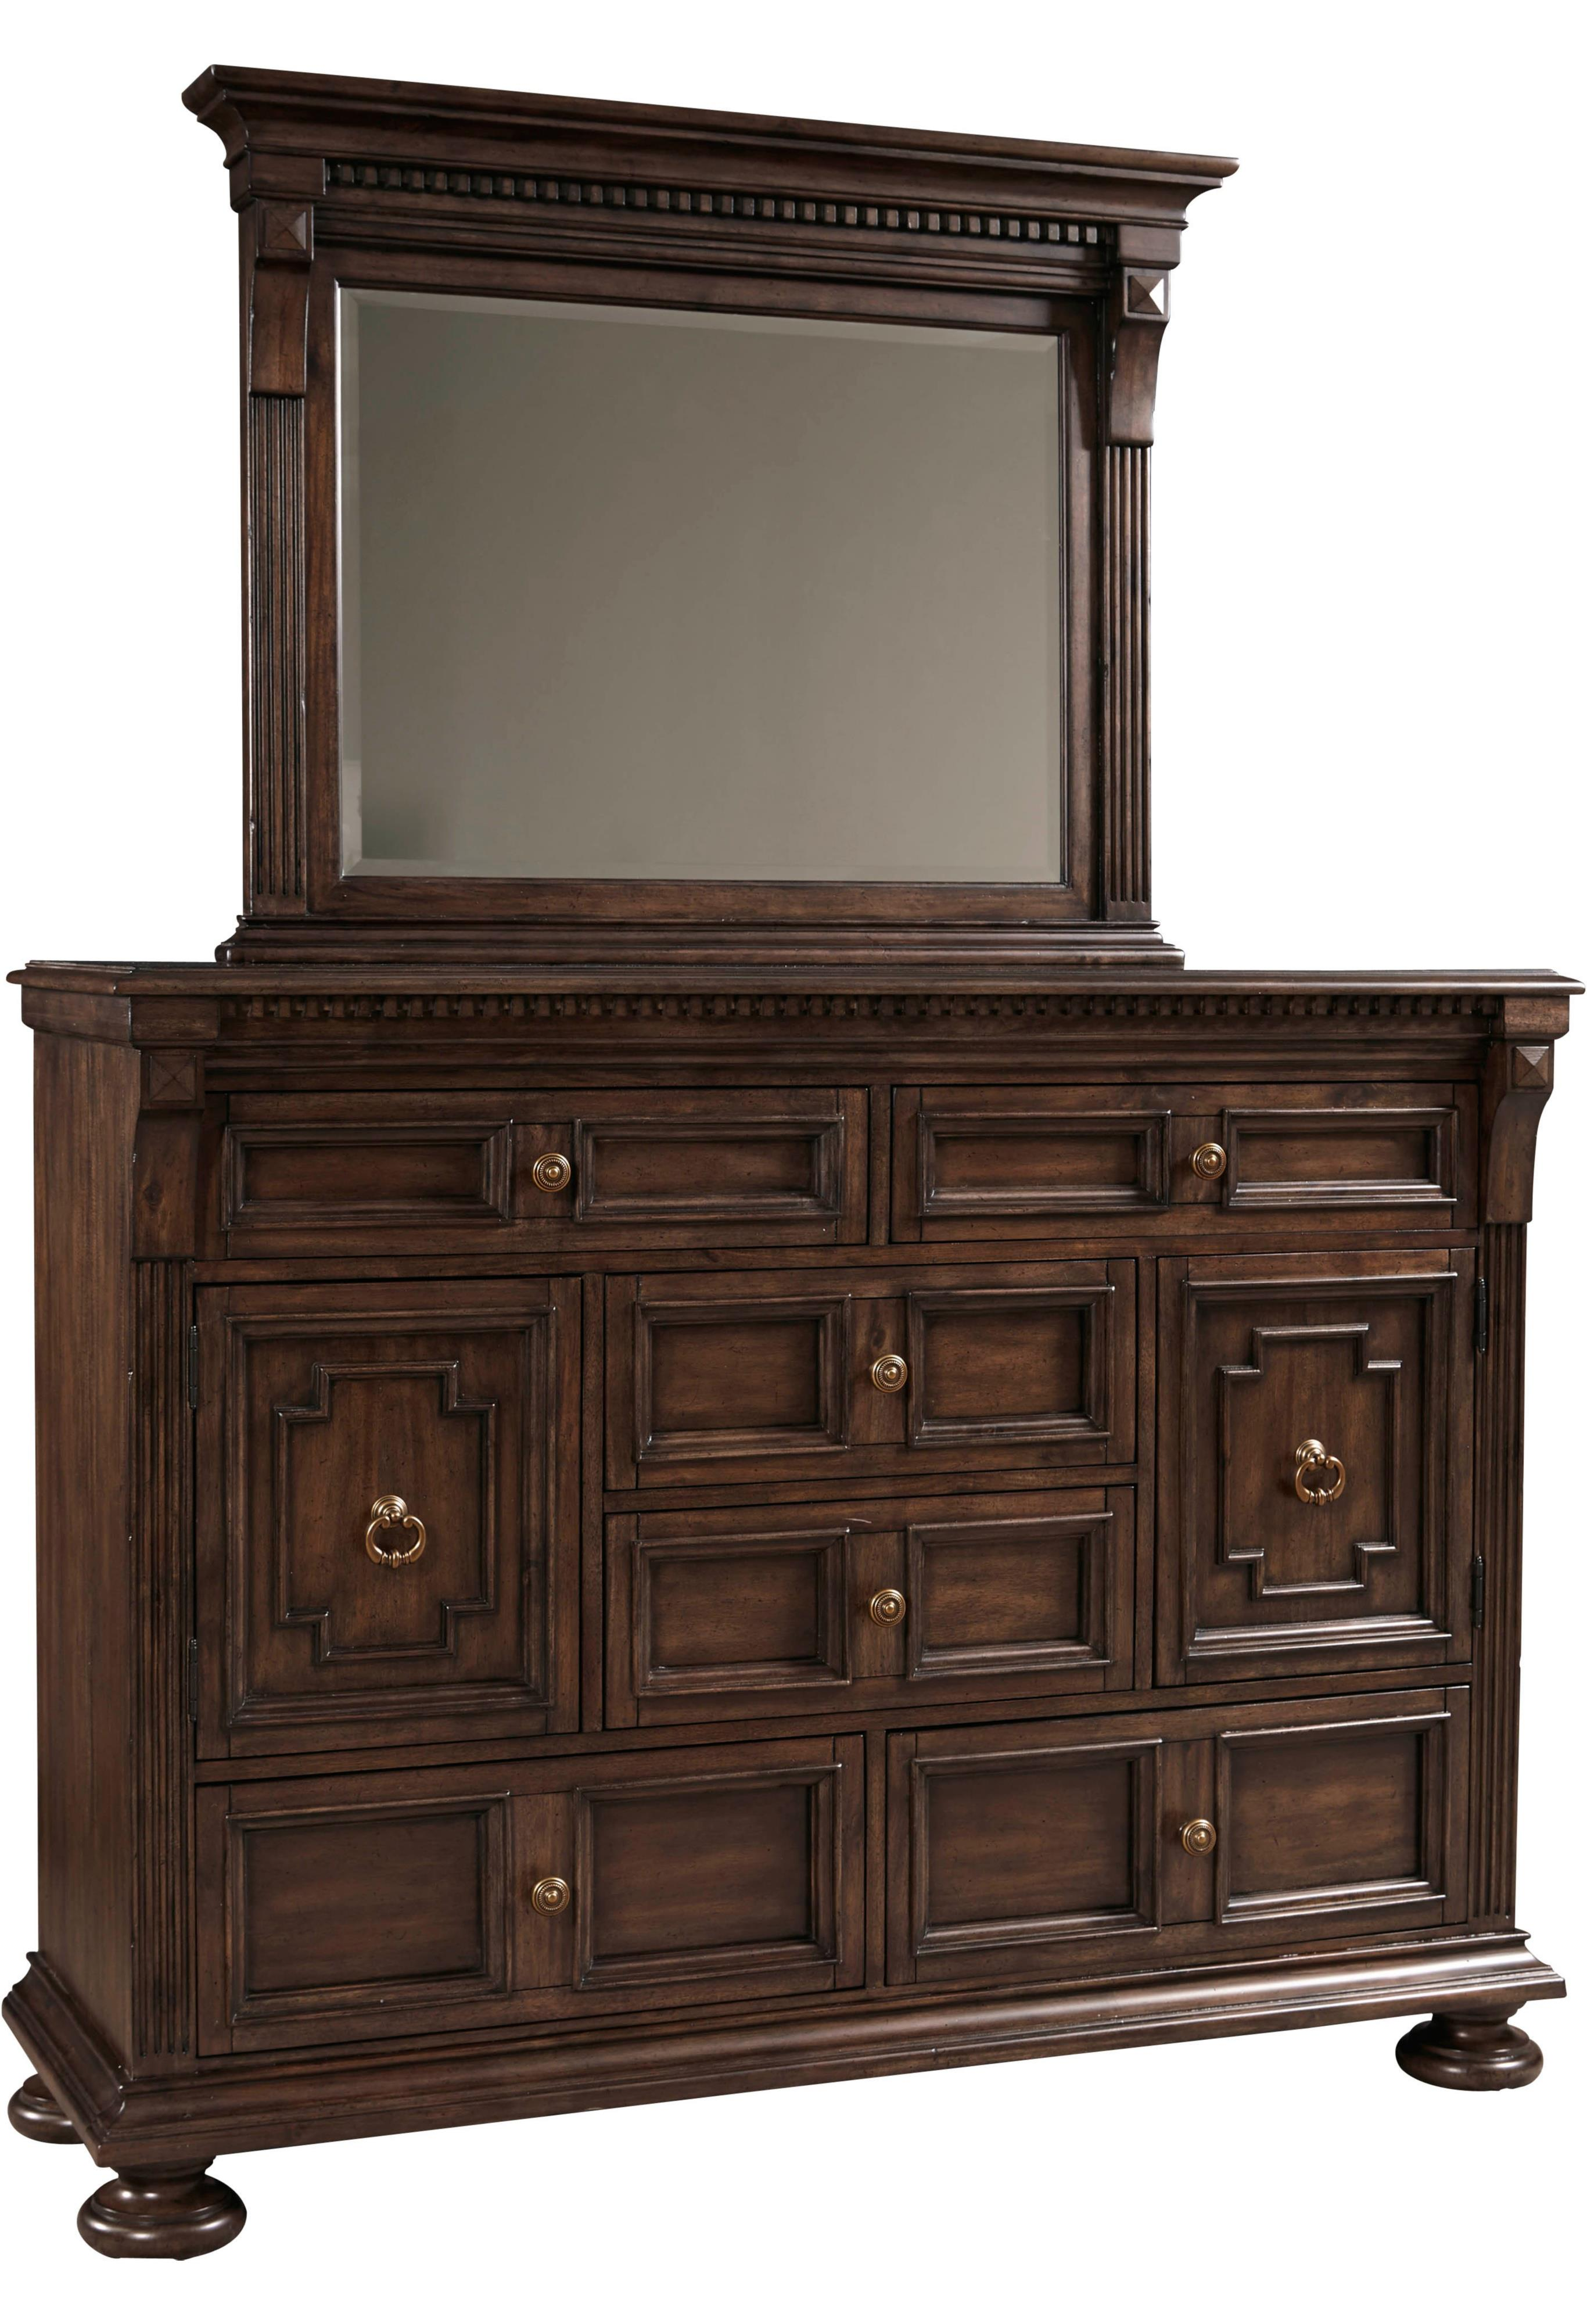 Broyhill Furniture Lyla Chesser and Mirror Set - Item Number: 4912-234+237